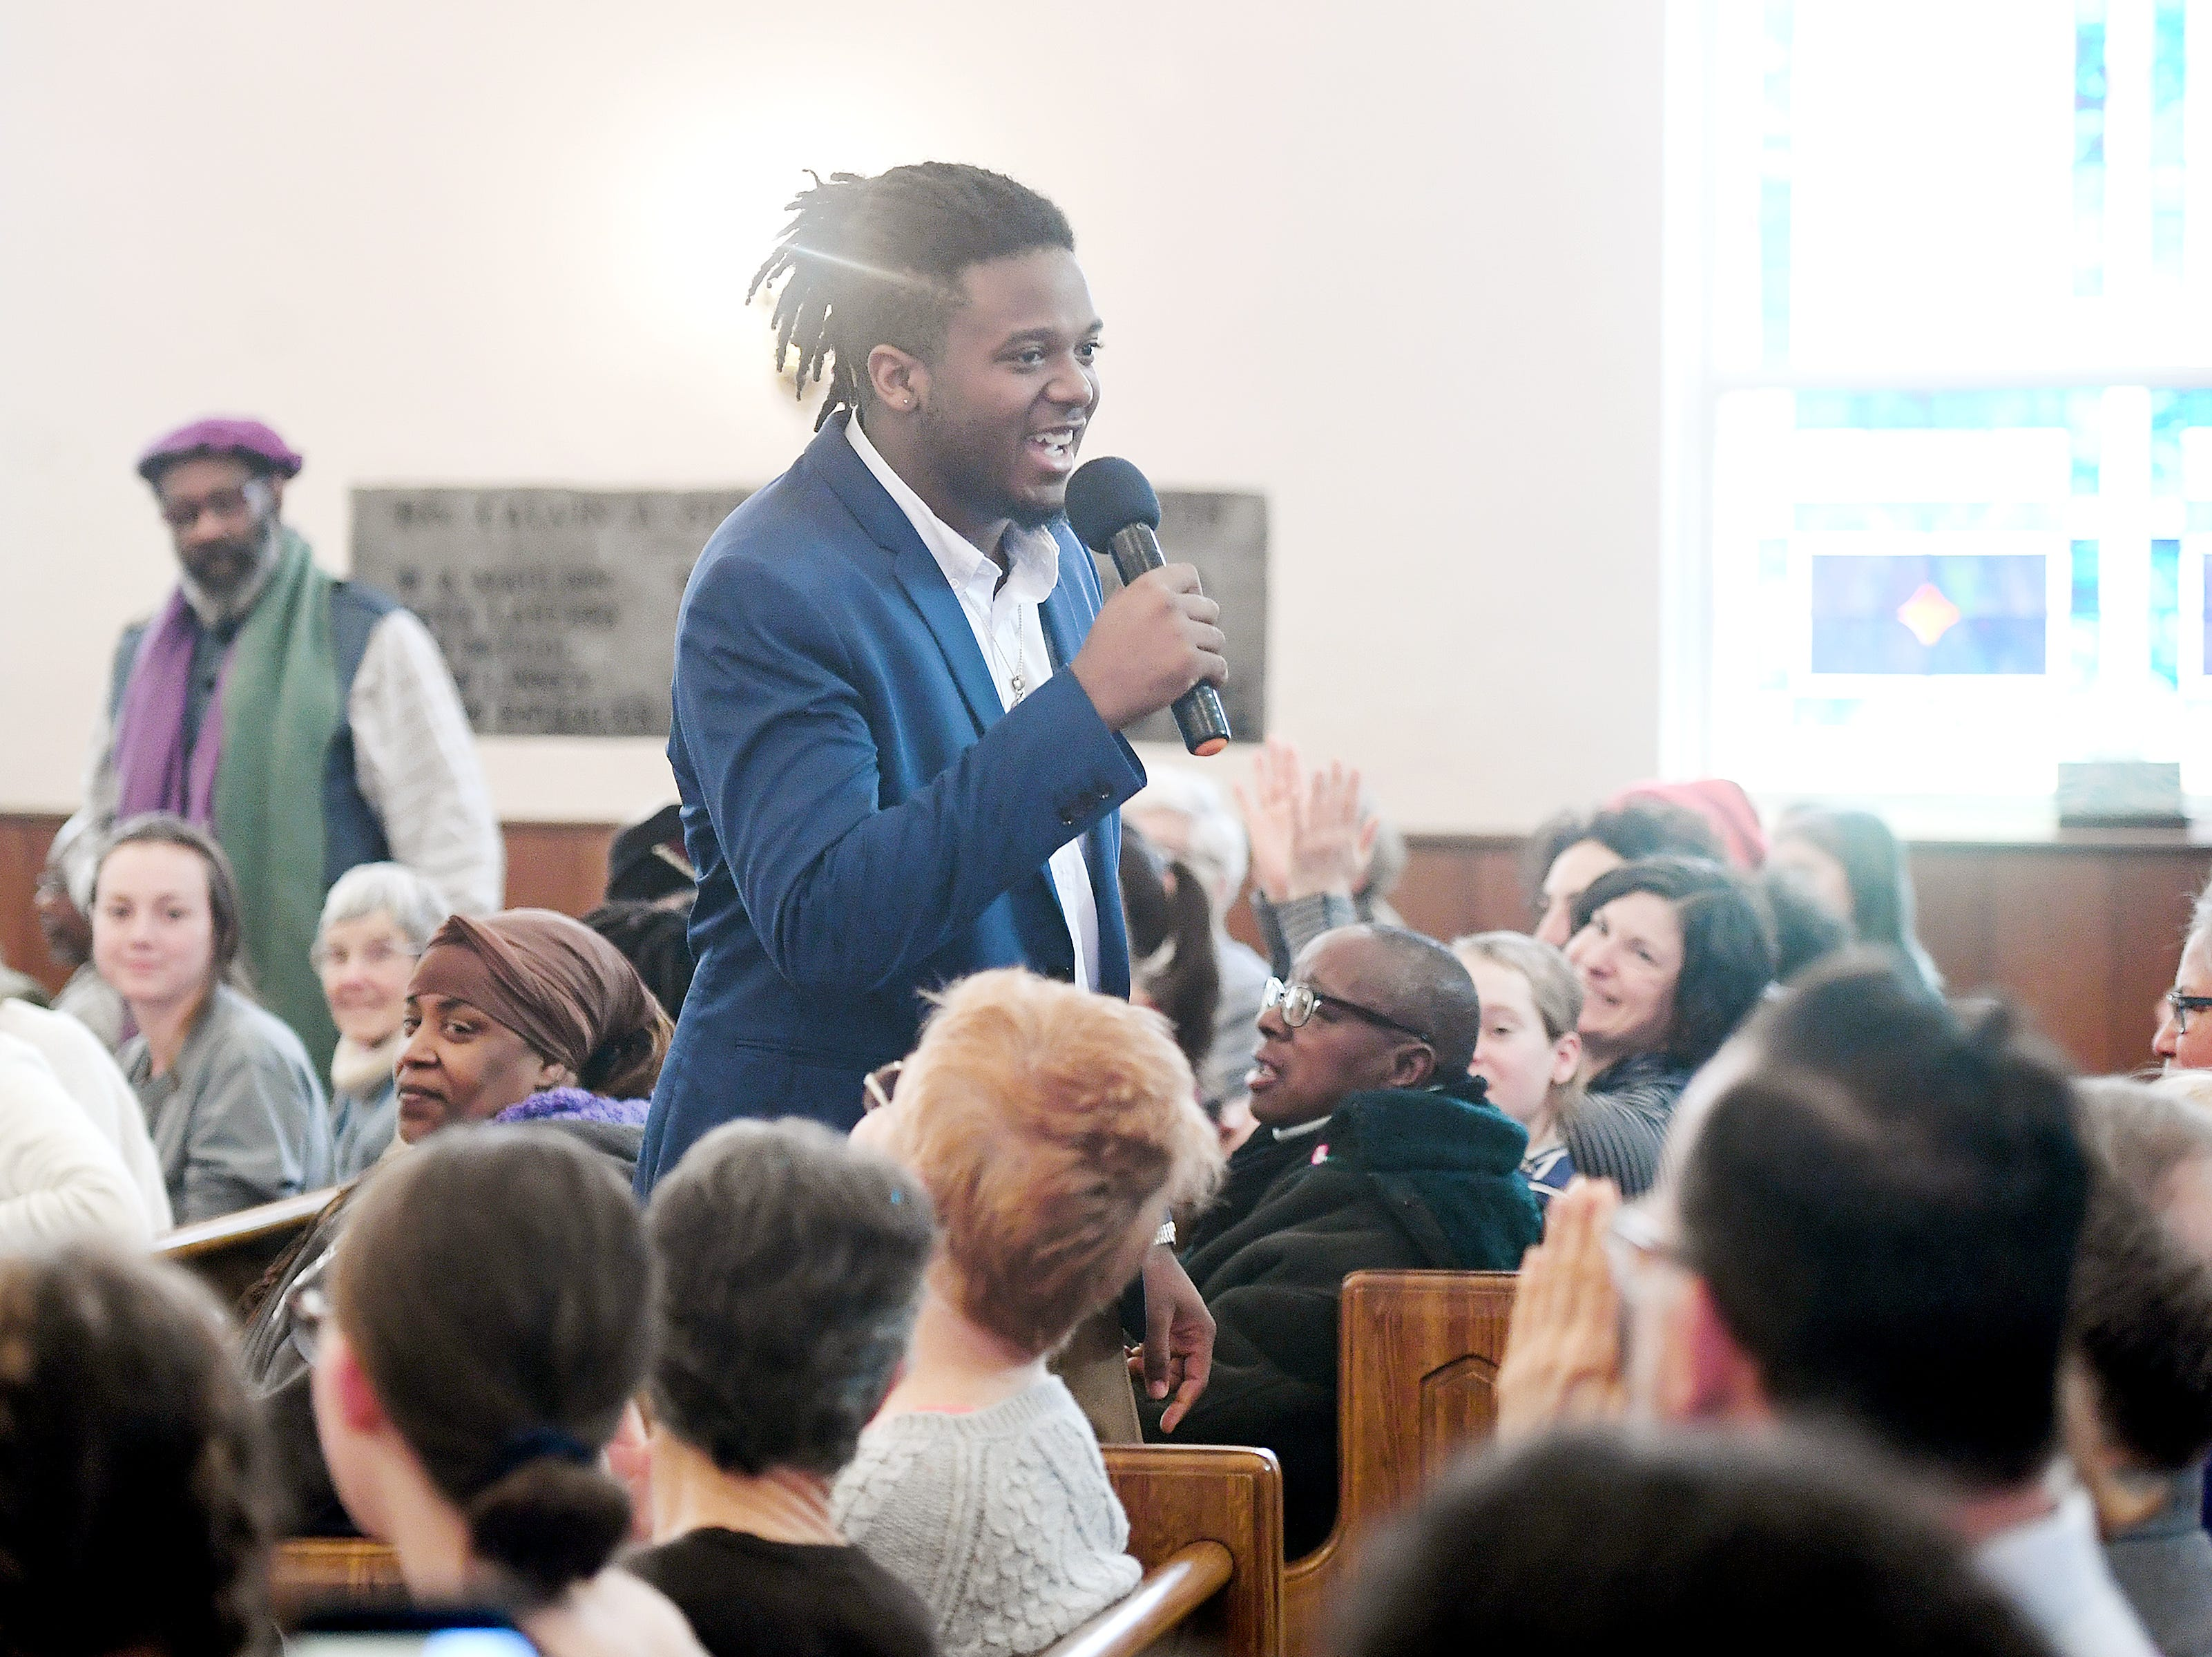 Zion Morgan, a student at Roberson High School, sings to the crowd at St. James AME Church during the Dr. Martin Luther King, Jr. Peace March and Rally on Jan. 21, 2019.